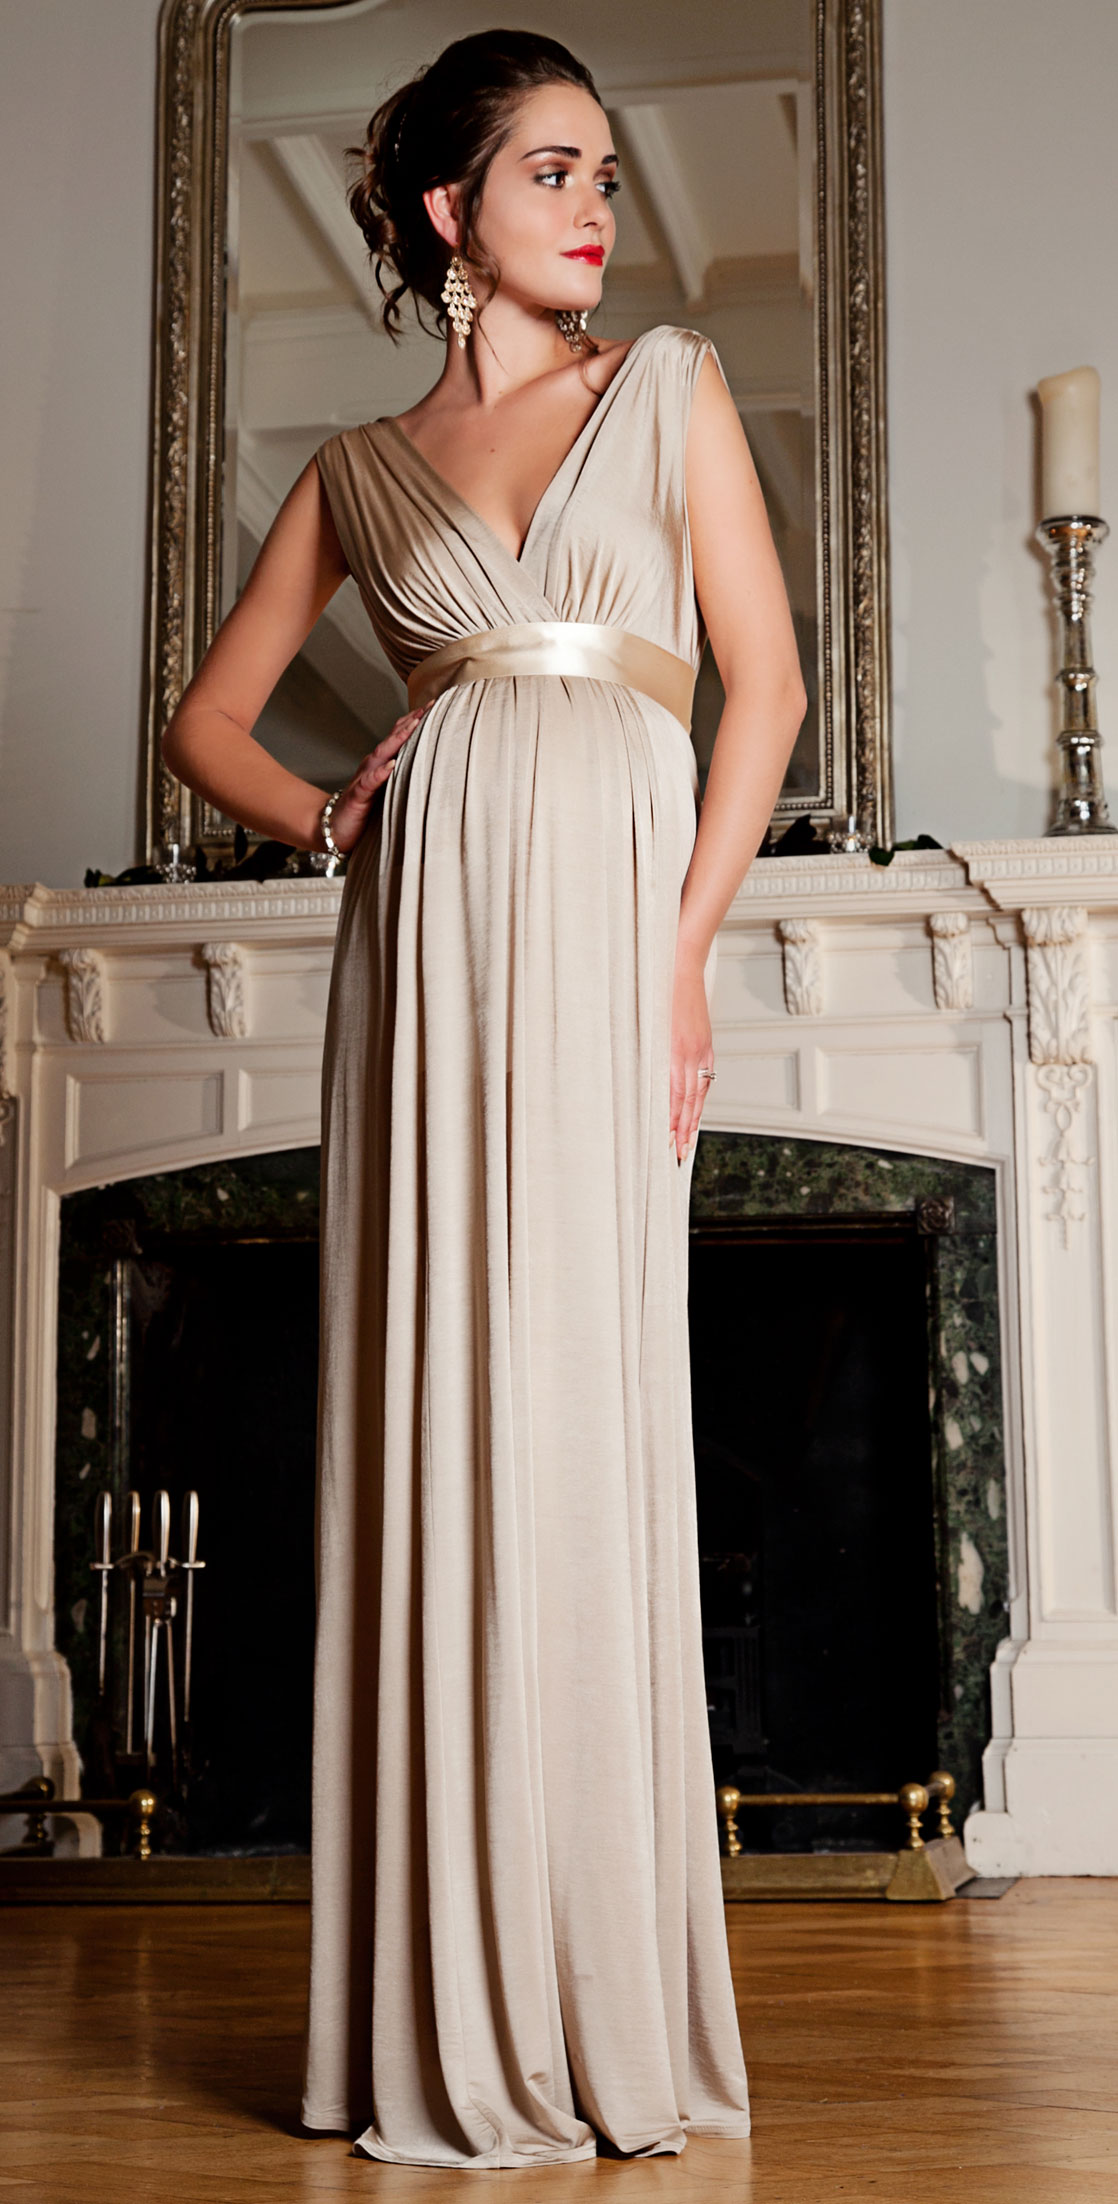 Anastasia maternity gown gold dust maternity wedding dresses anastasia maternity gown gold dust maternity wedding dresses evening wear and party clothes by tiffany rose ombrellifo Image collections